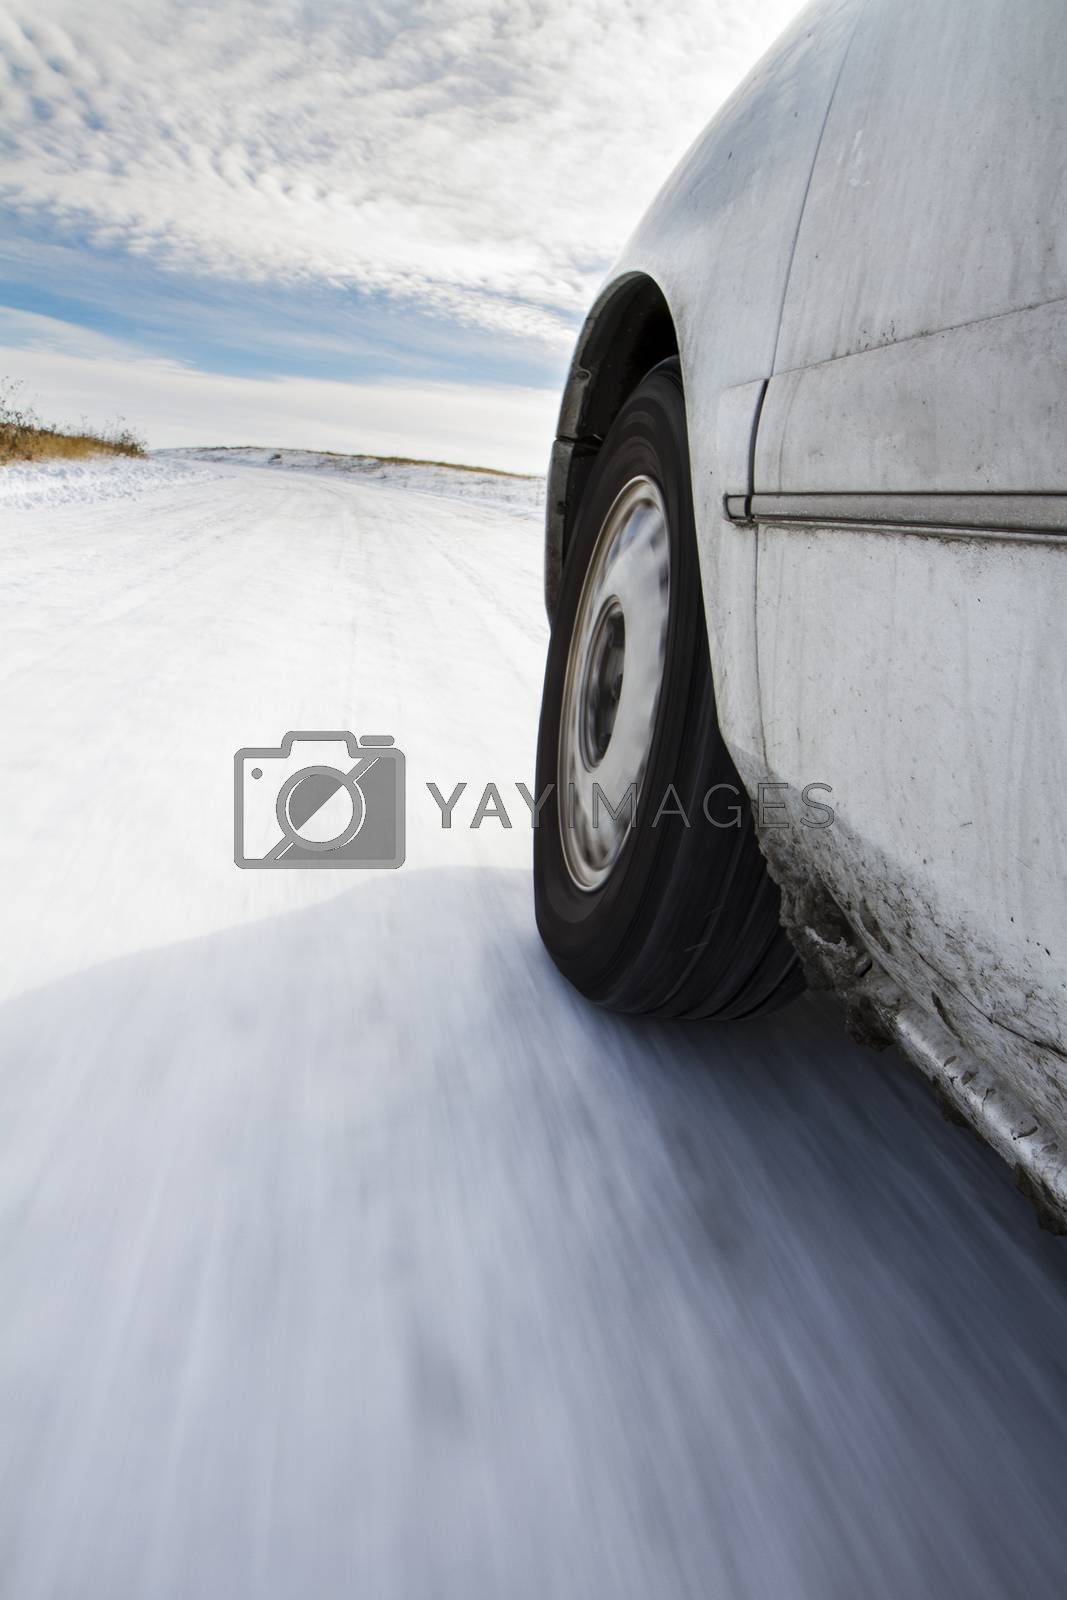 Car driving down the road in the winter snow